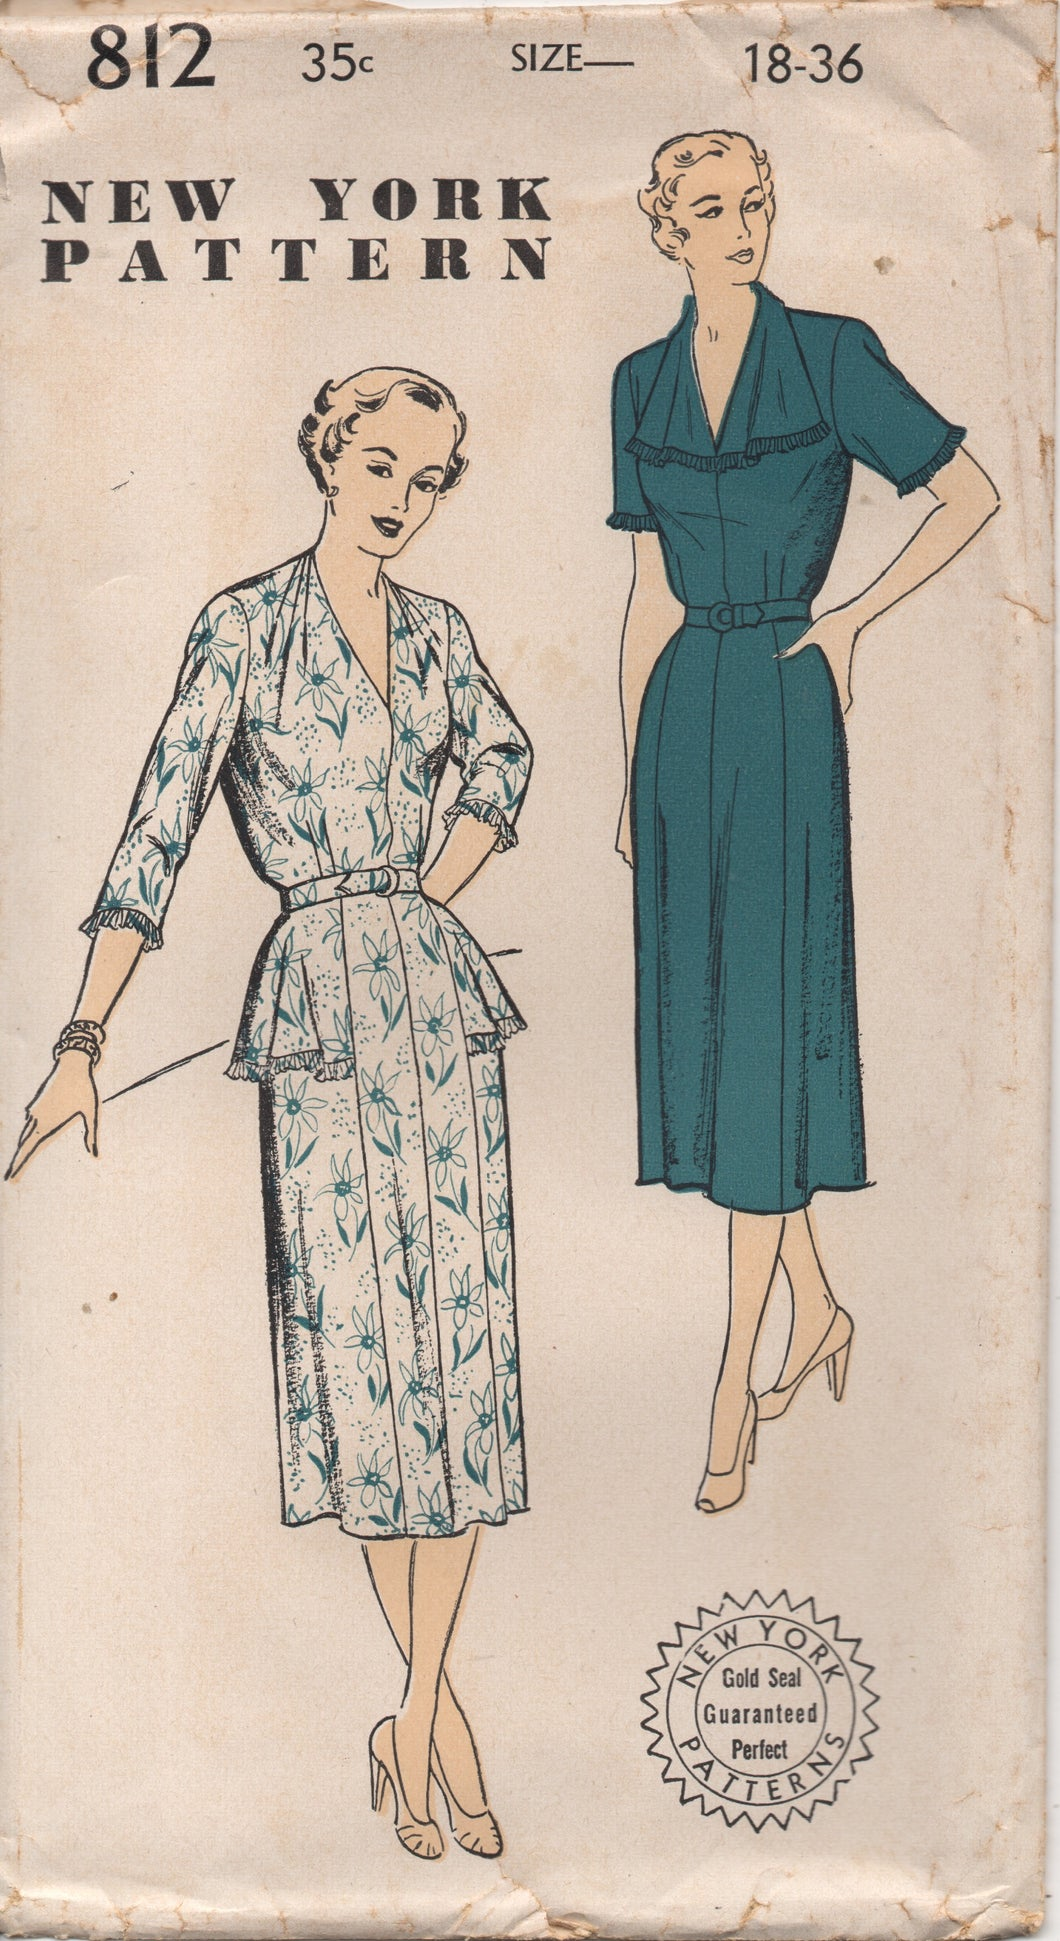 1950's New York One Piece Dress with Tucked Shoulder detail and Hip Flare - Bust 36